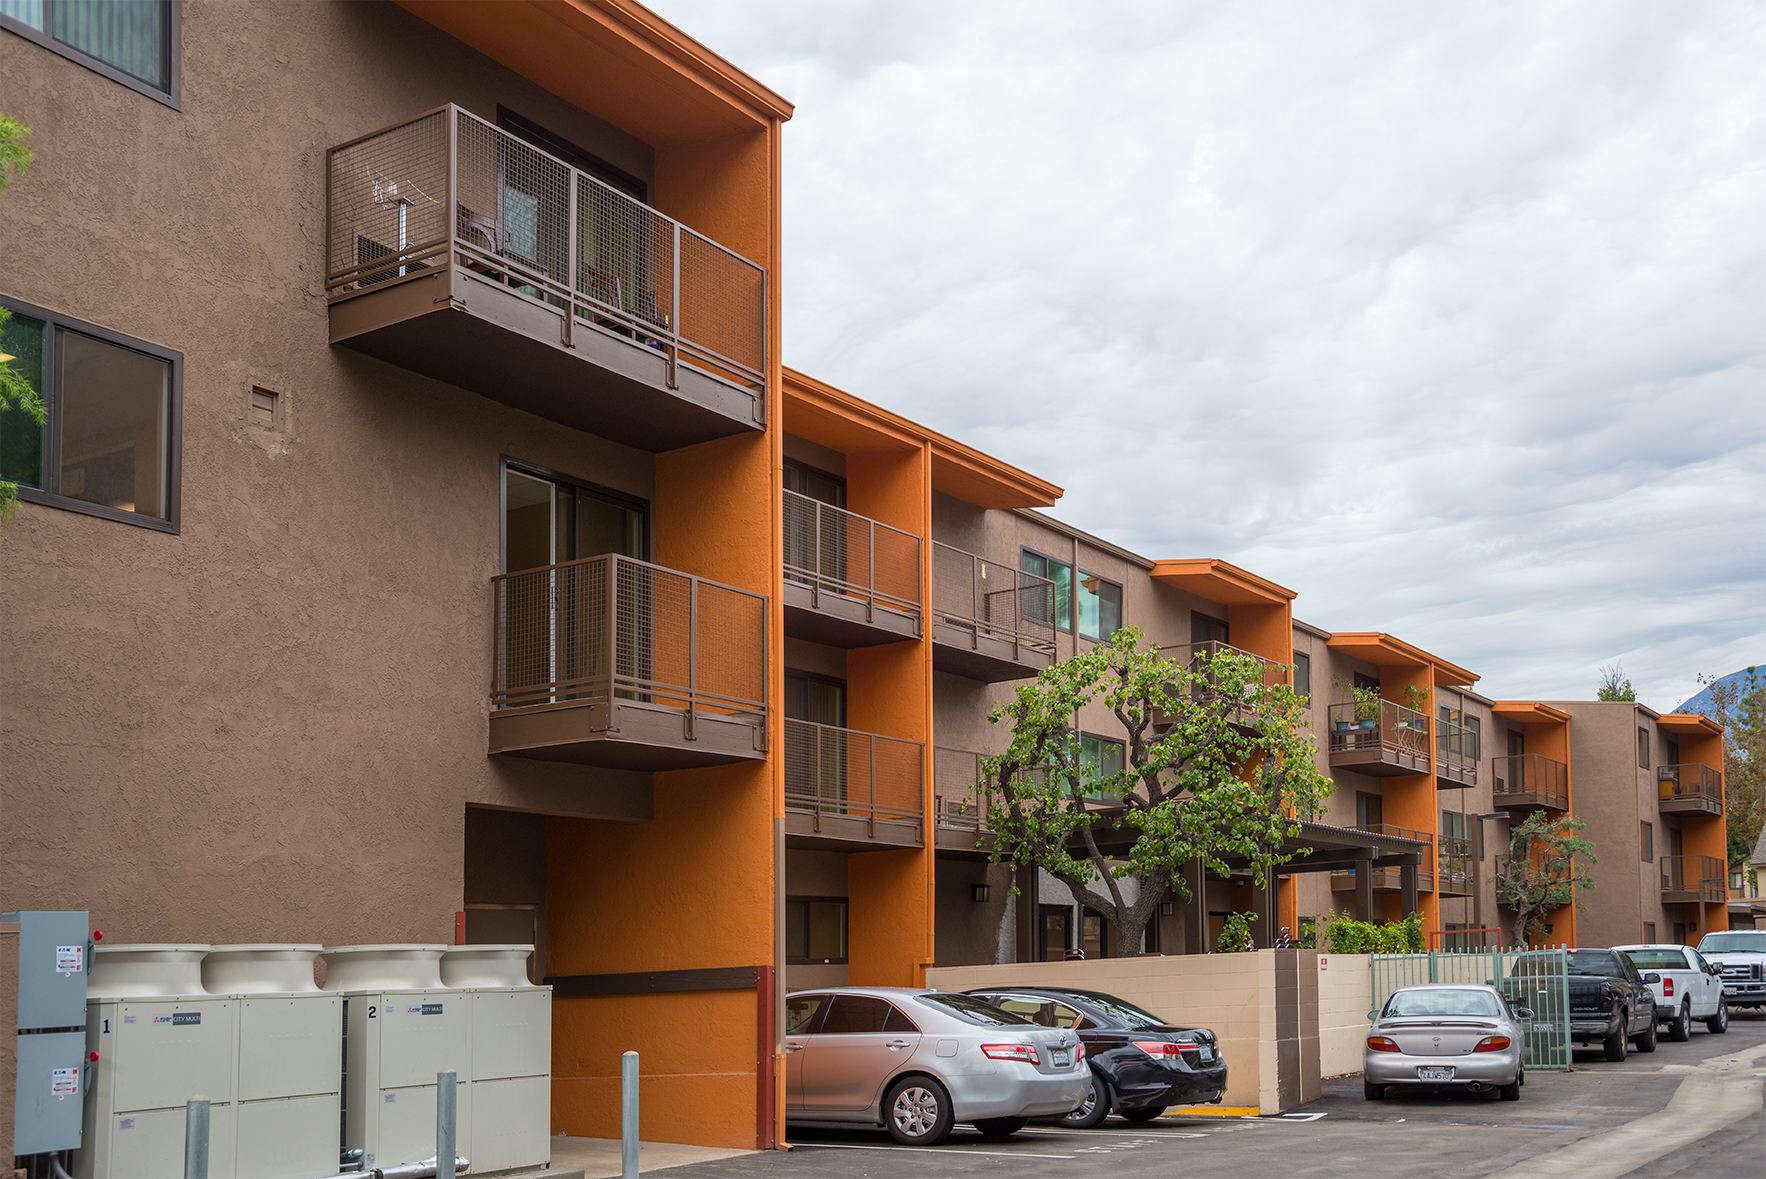 Apartment Building side view showcasing Orange color with Brown colors as well. Railings and Power generators depicted as well.